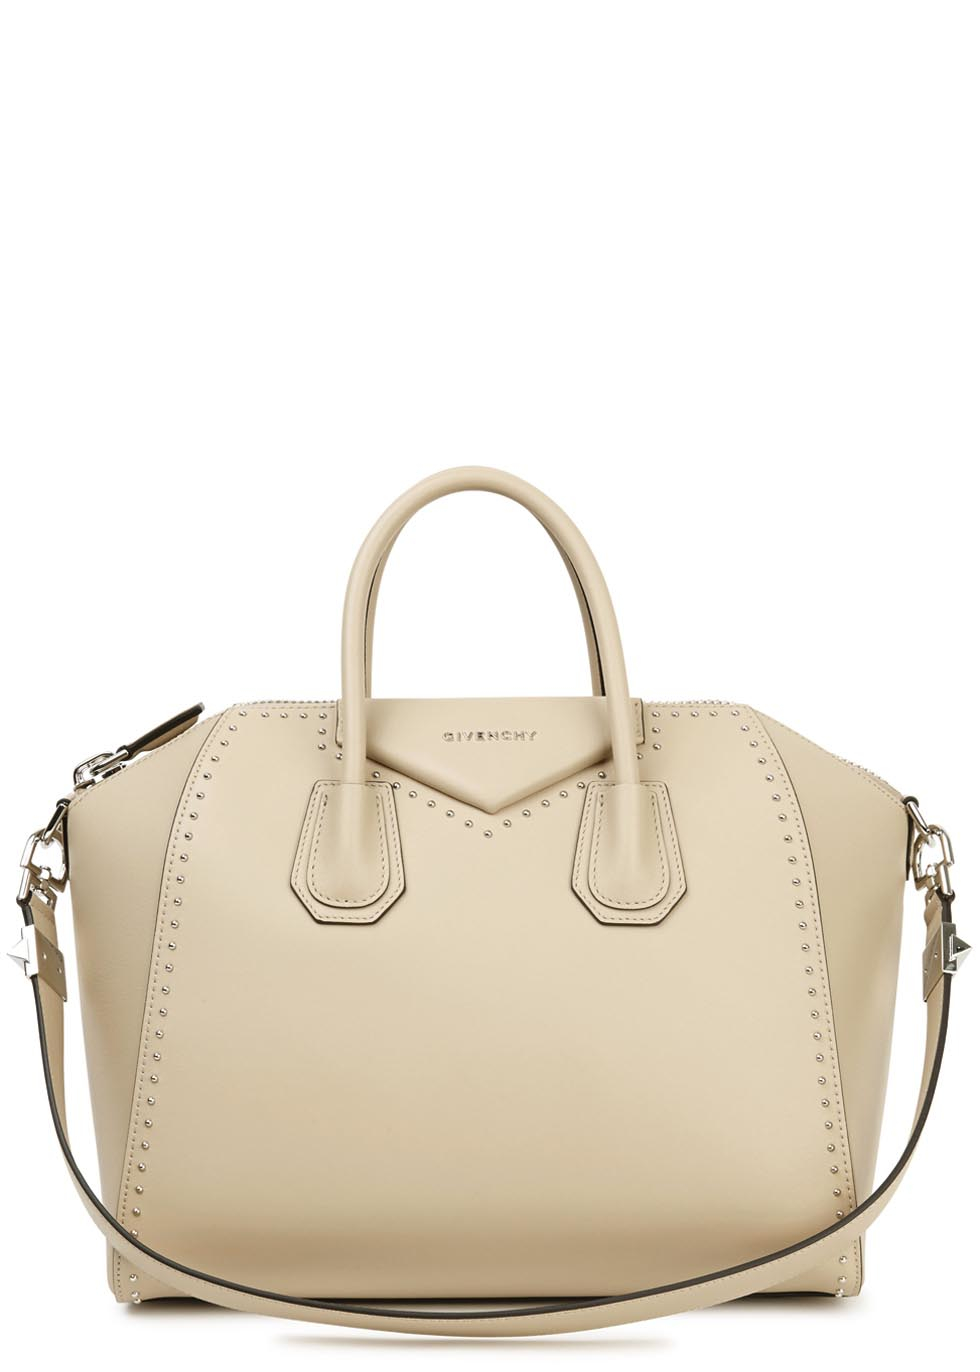 Givenchy Antigona Medium Taupe Leather Tote in Natural - Lyst f42b722c4d35a